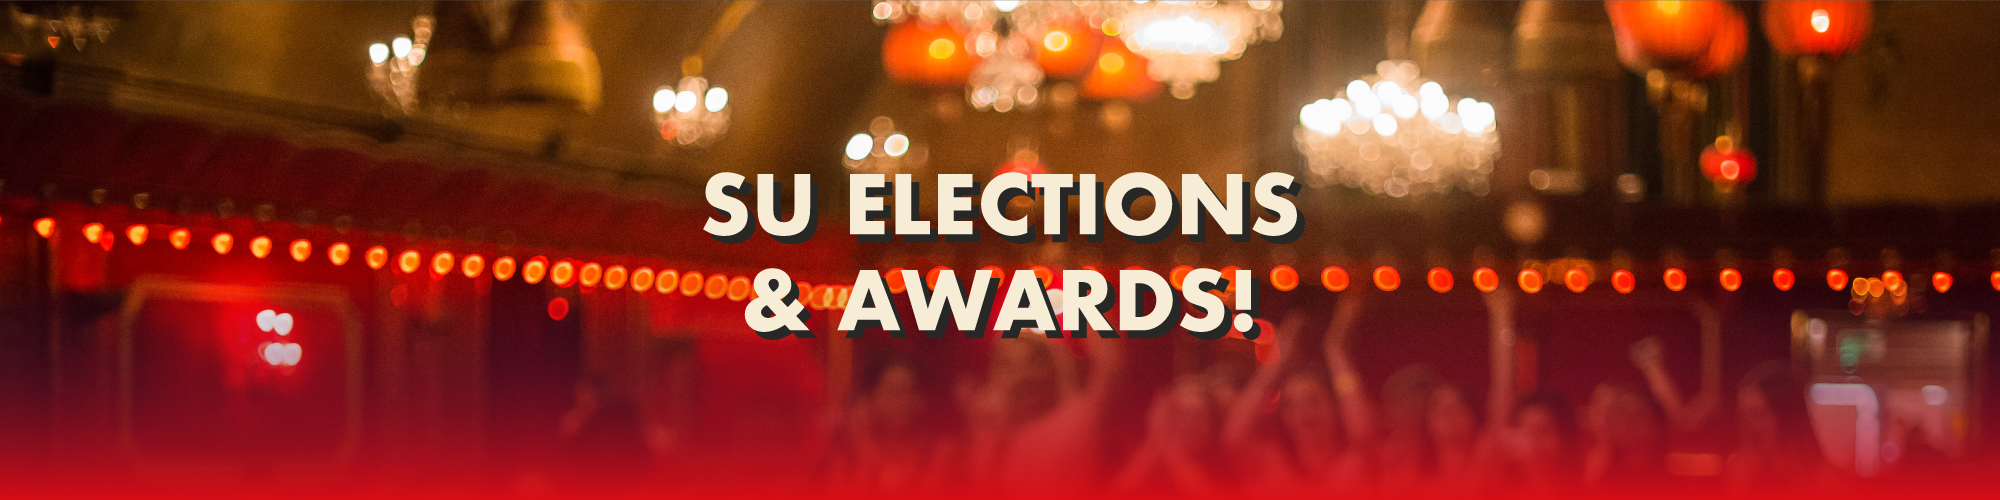 SU Awards Night & Elections Results 2021